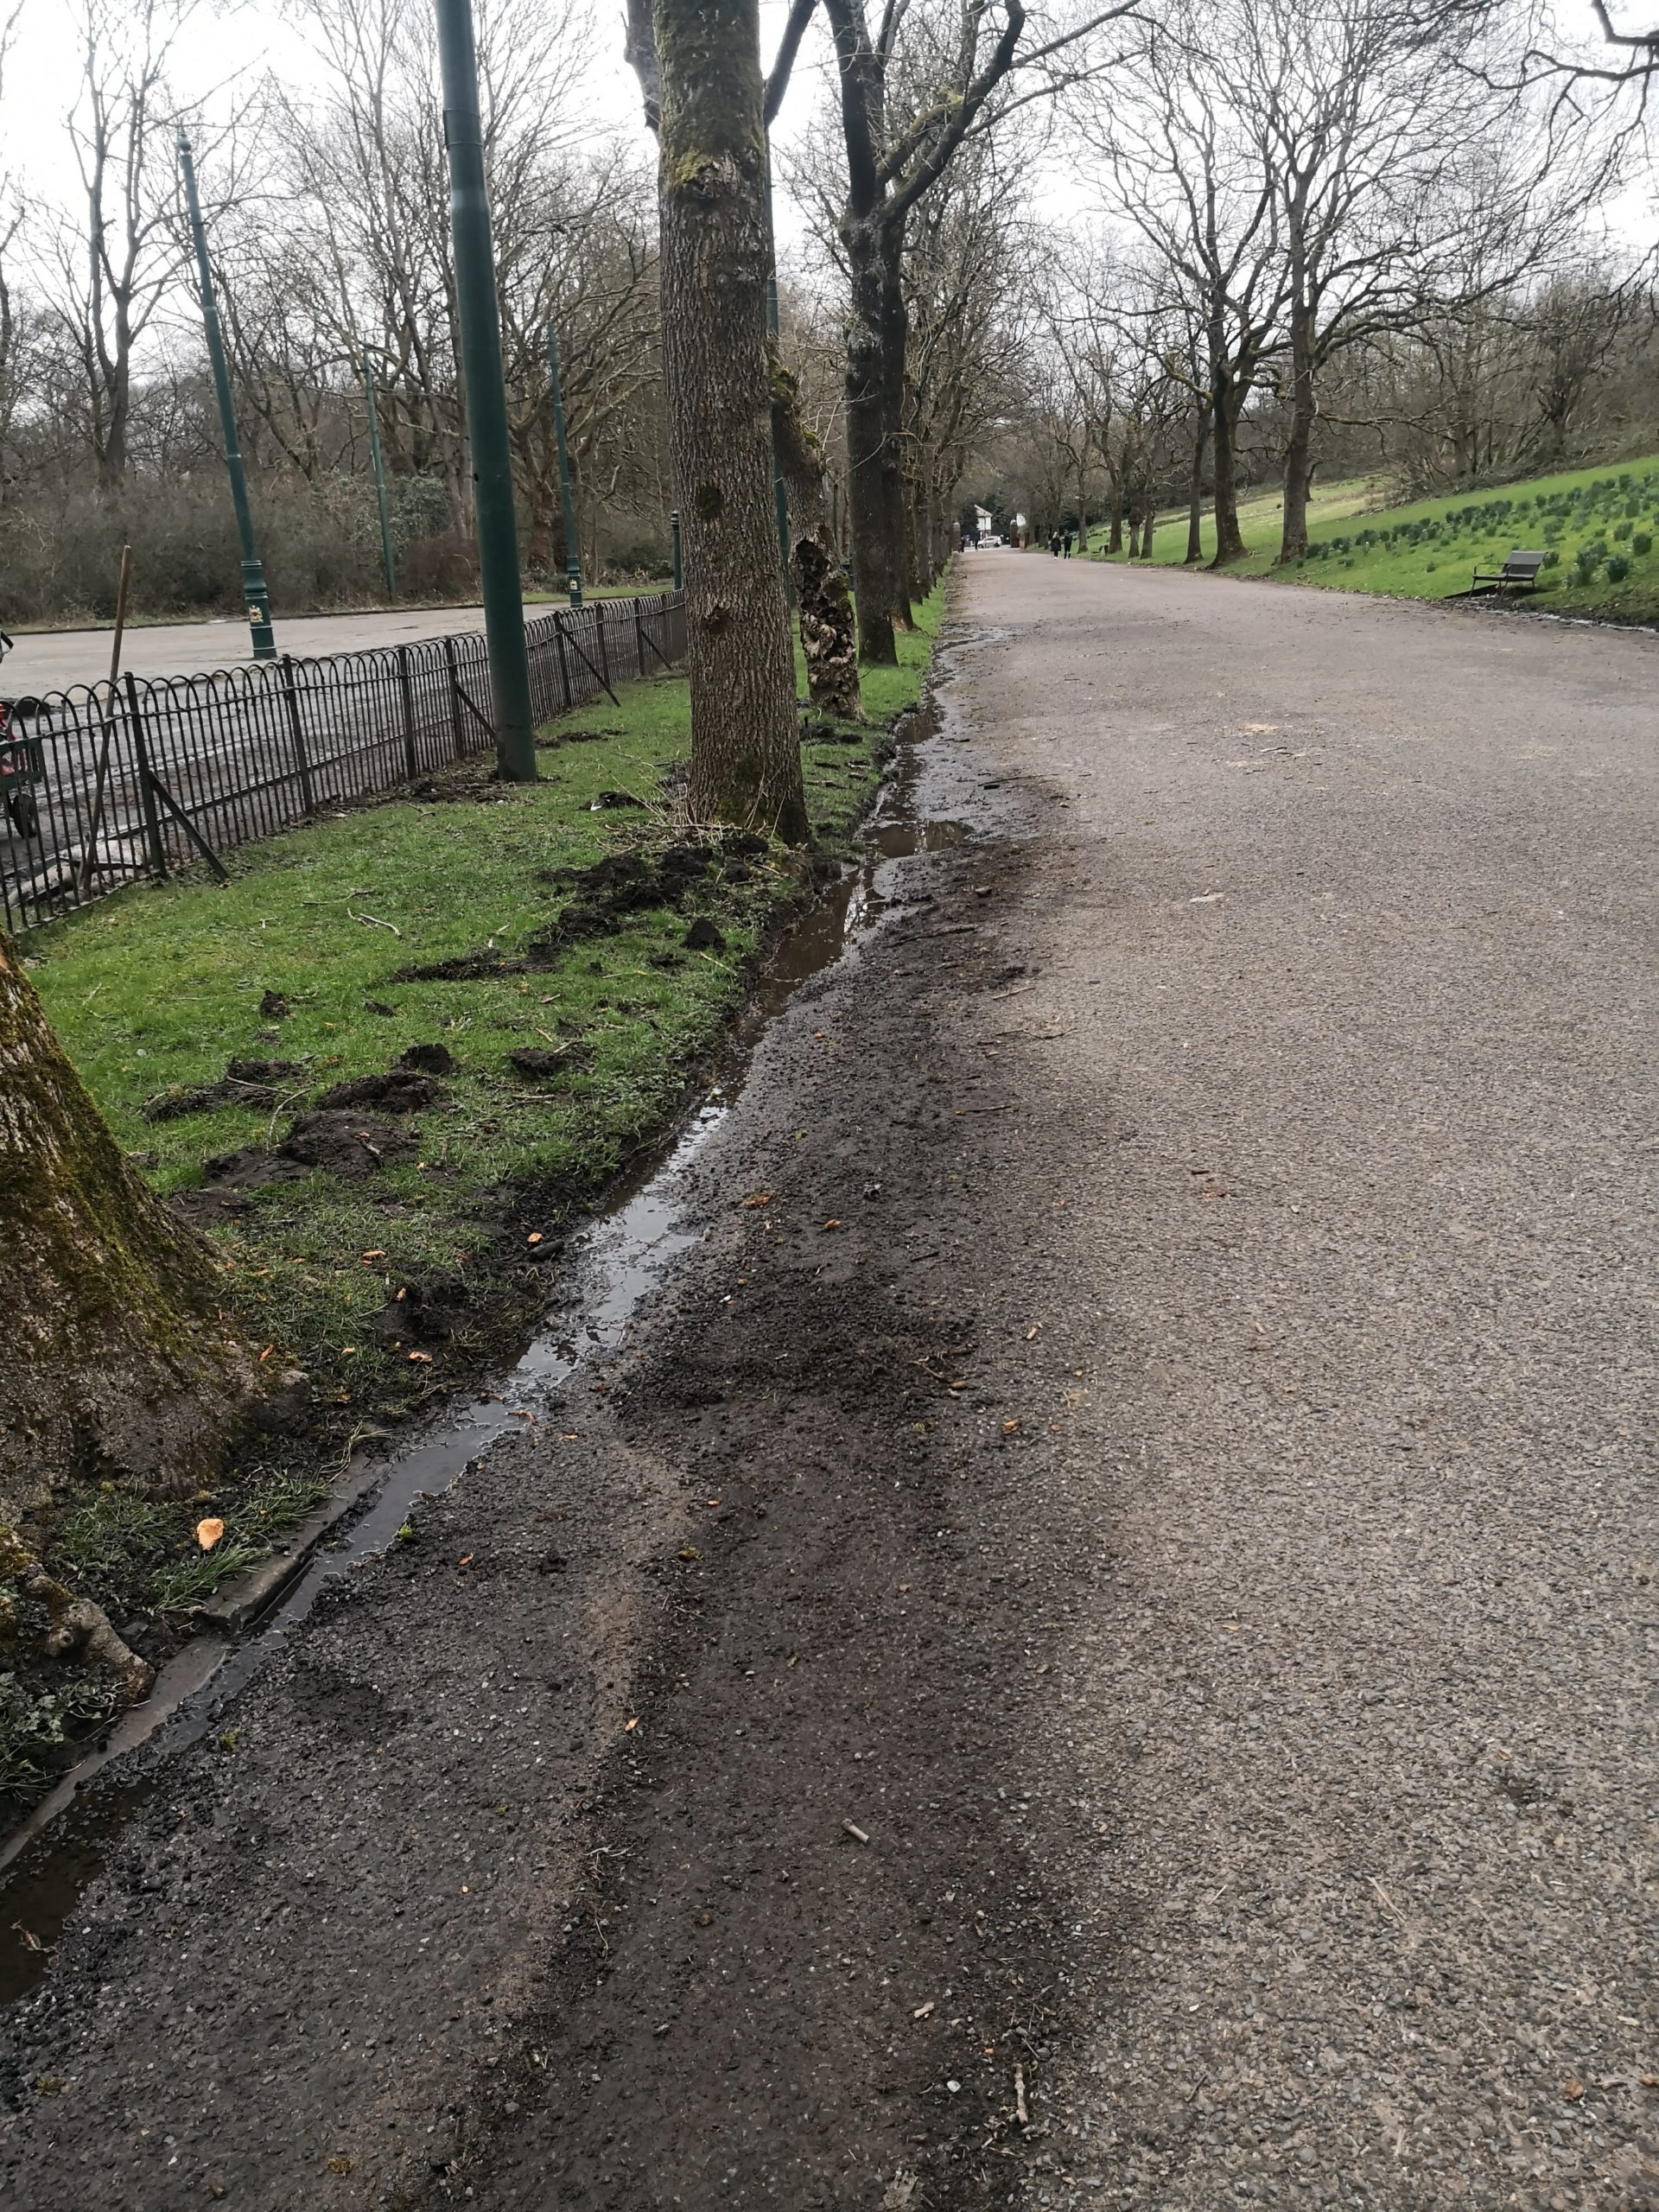 Cleaning up the Avenue side to allow better drainage of the hill